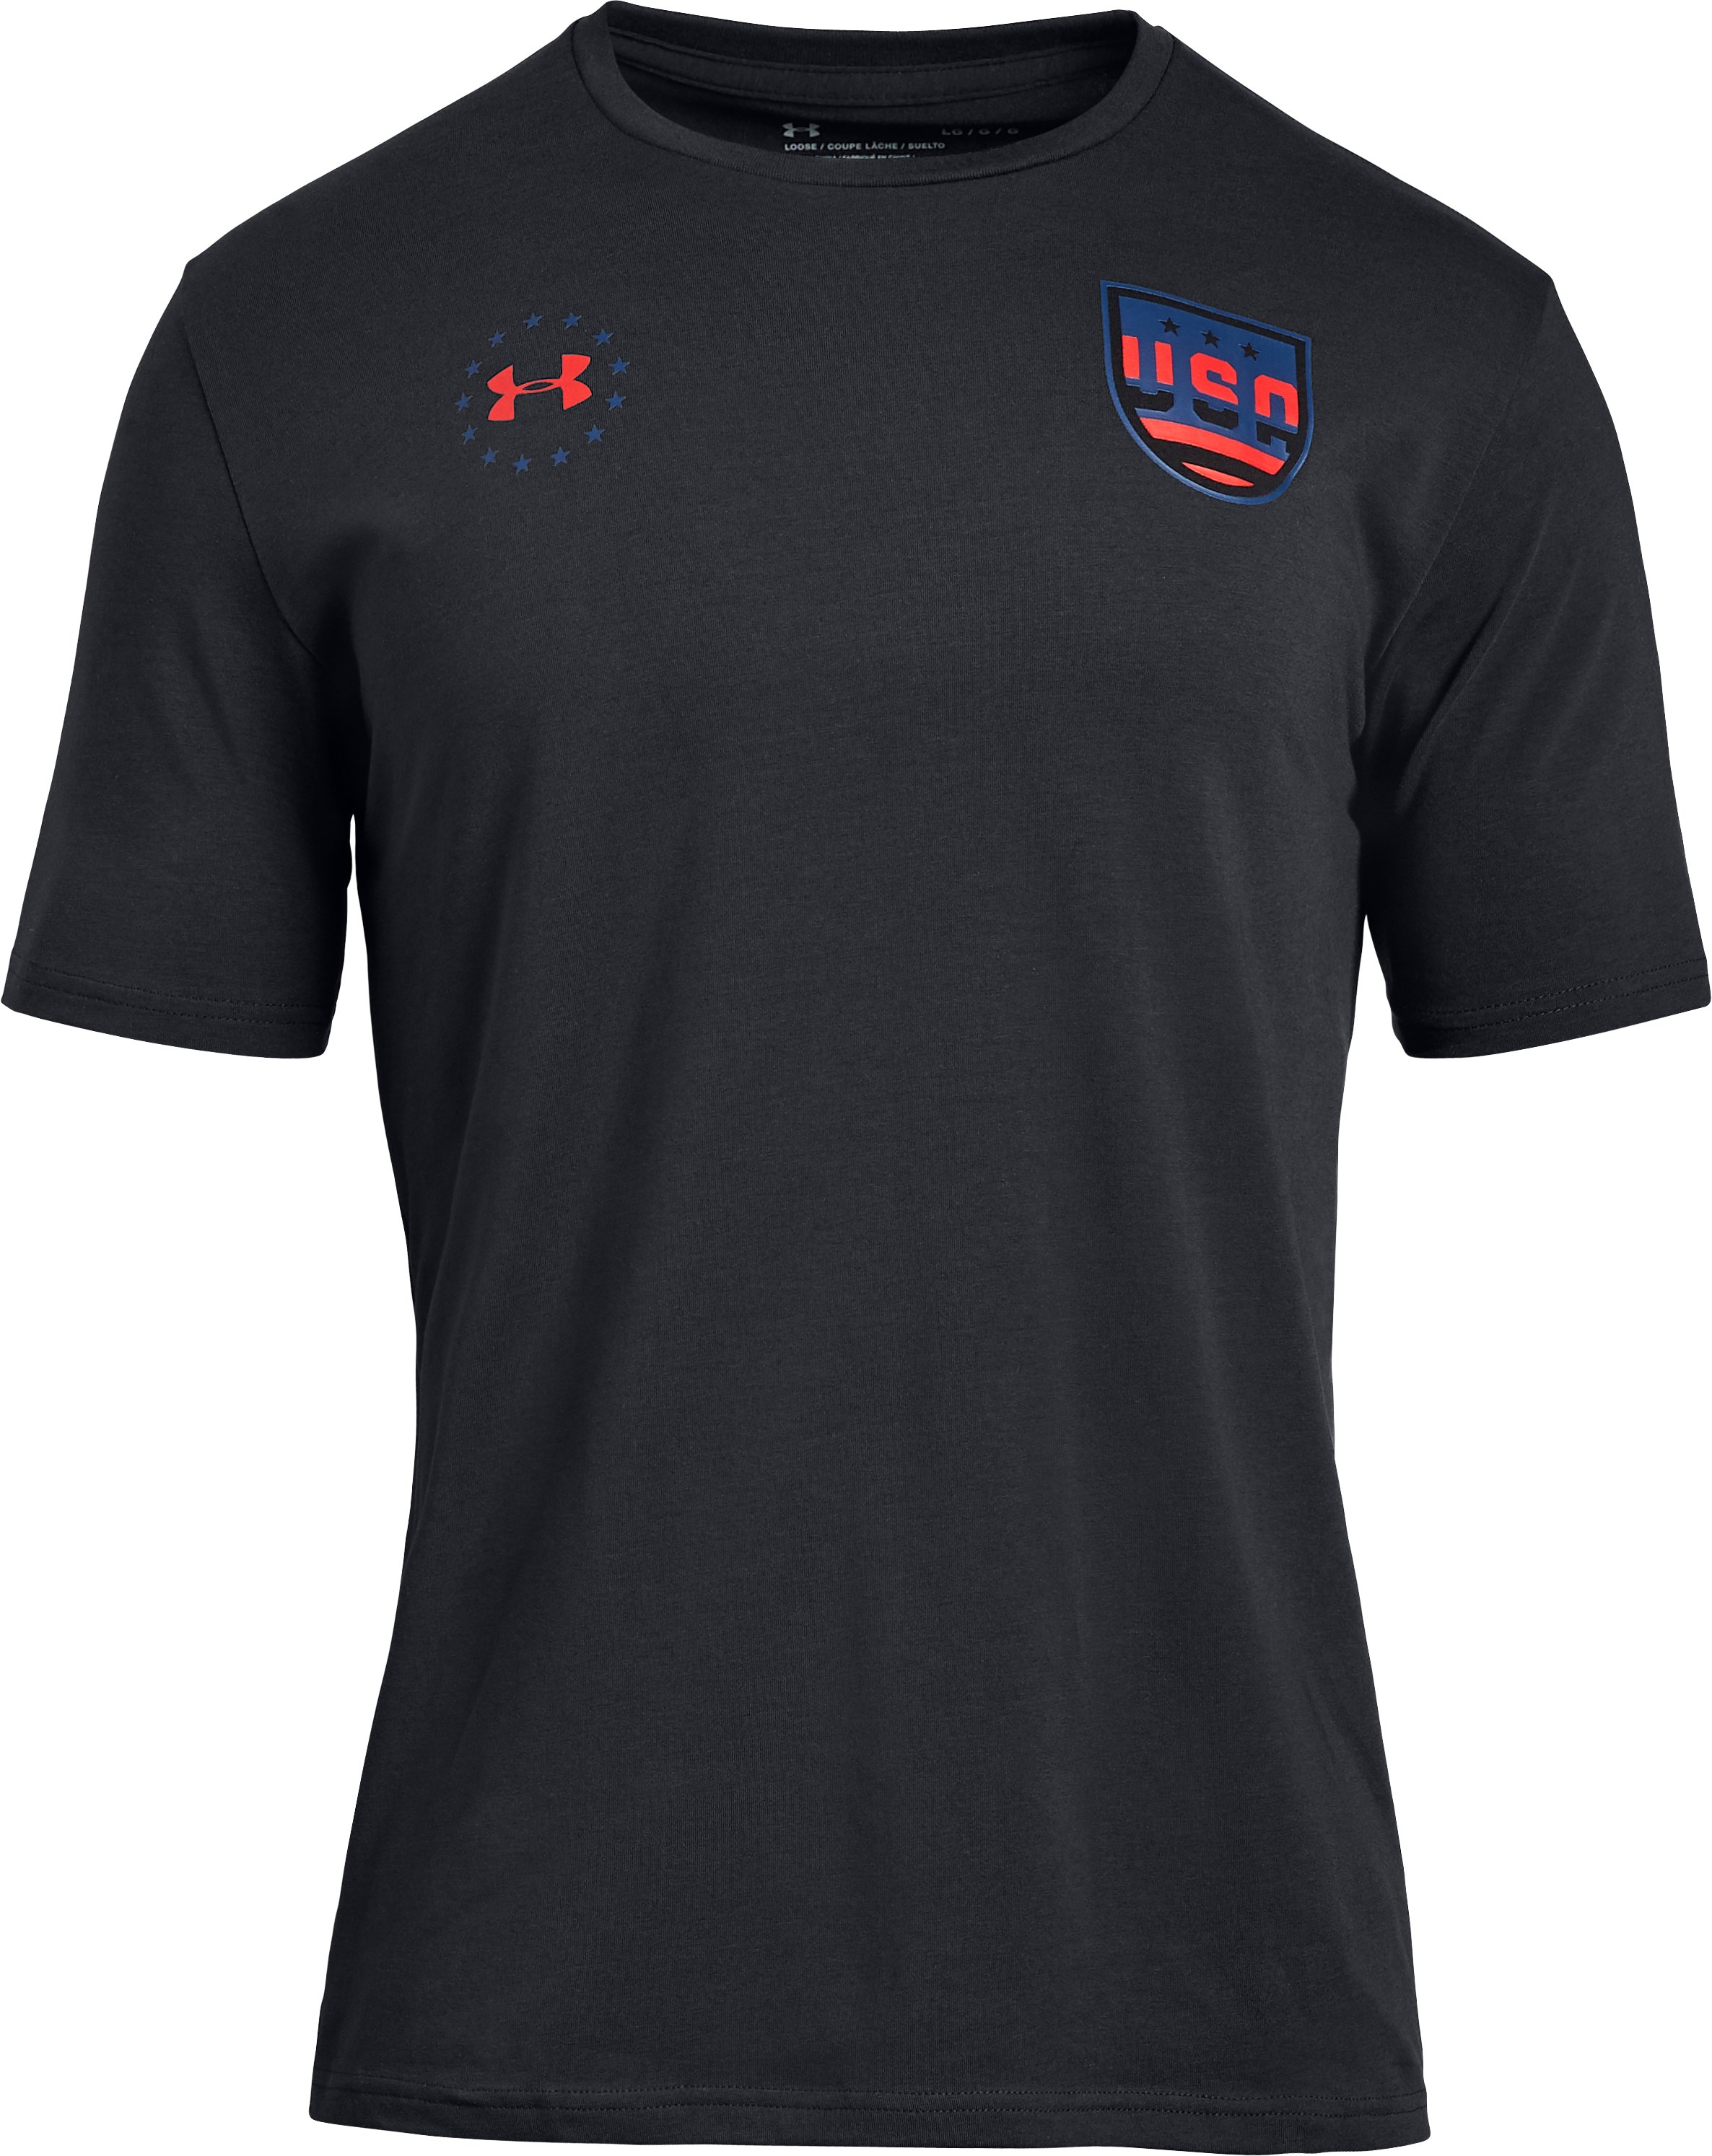 Men's UA Freedom Team USA T-Shirt, Black